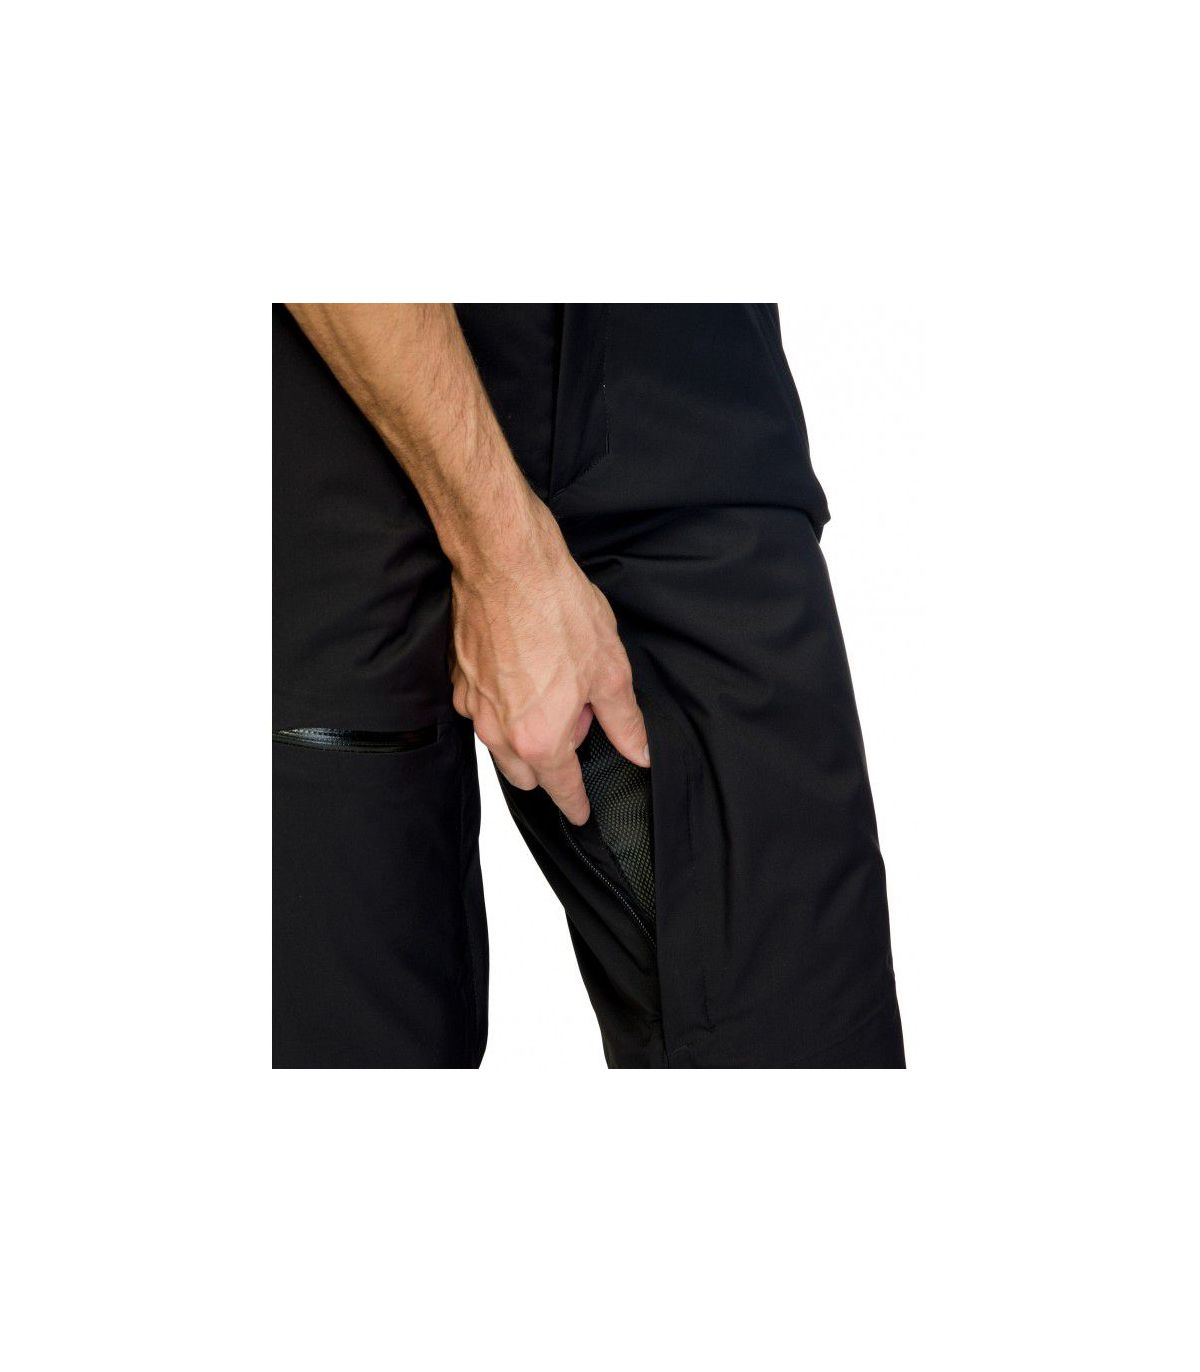 Oferta Pantalones Esqui The North Face Jeppeson Hombre